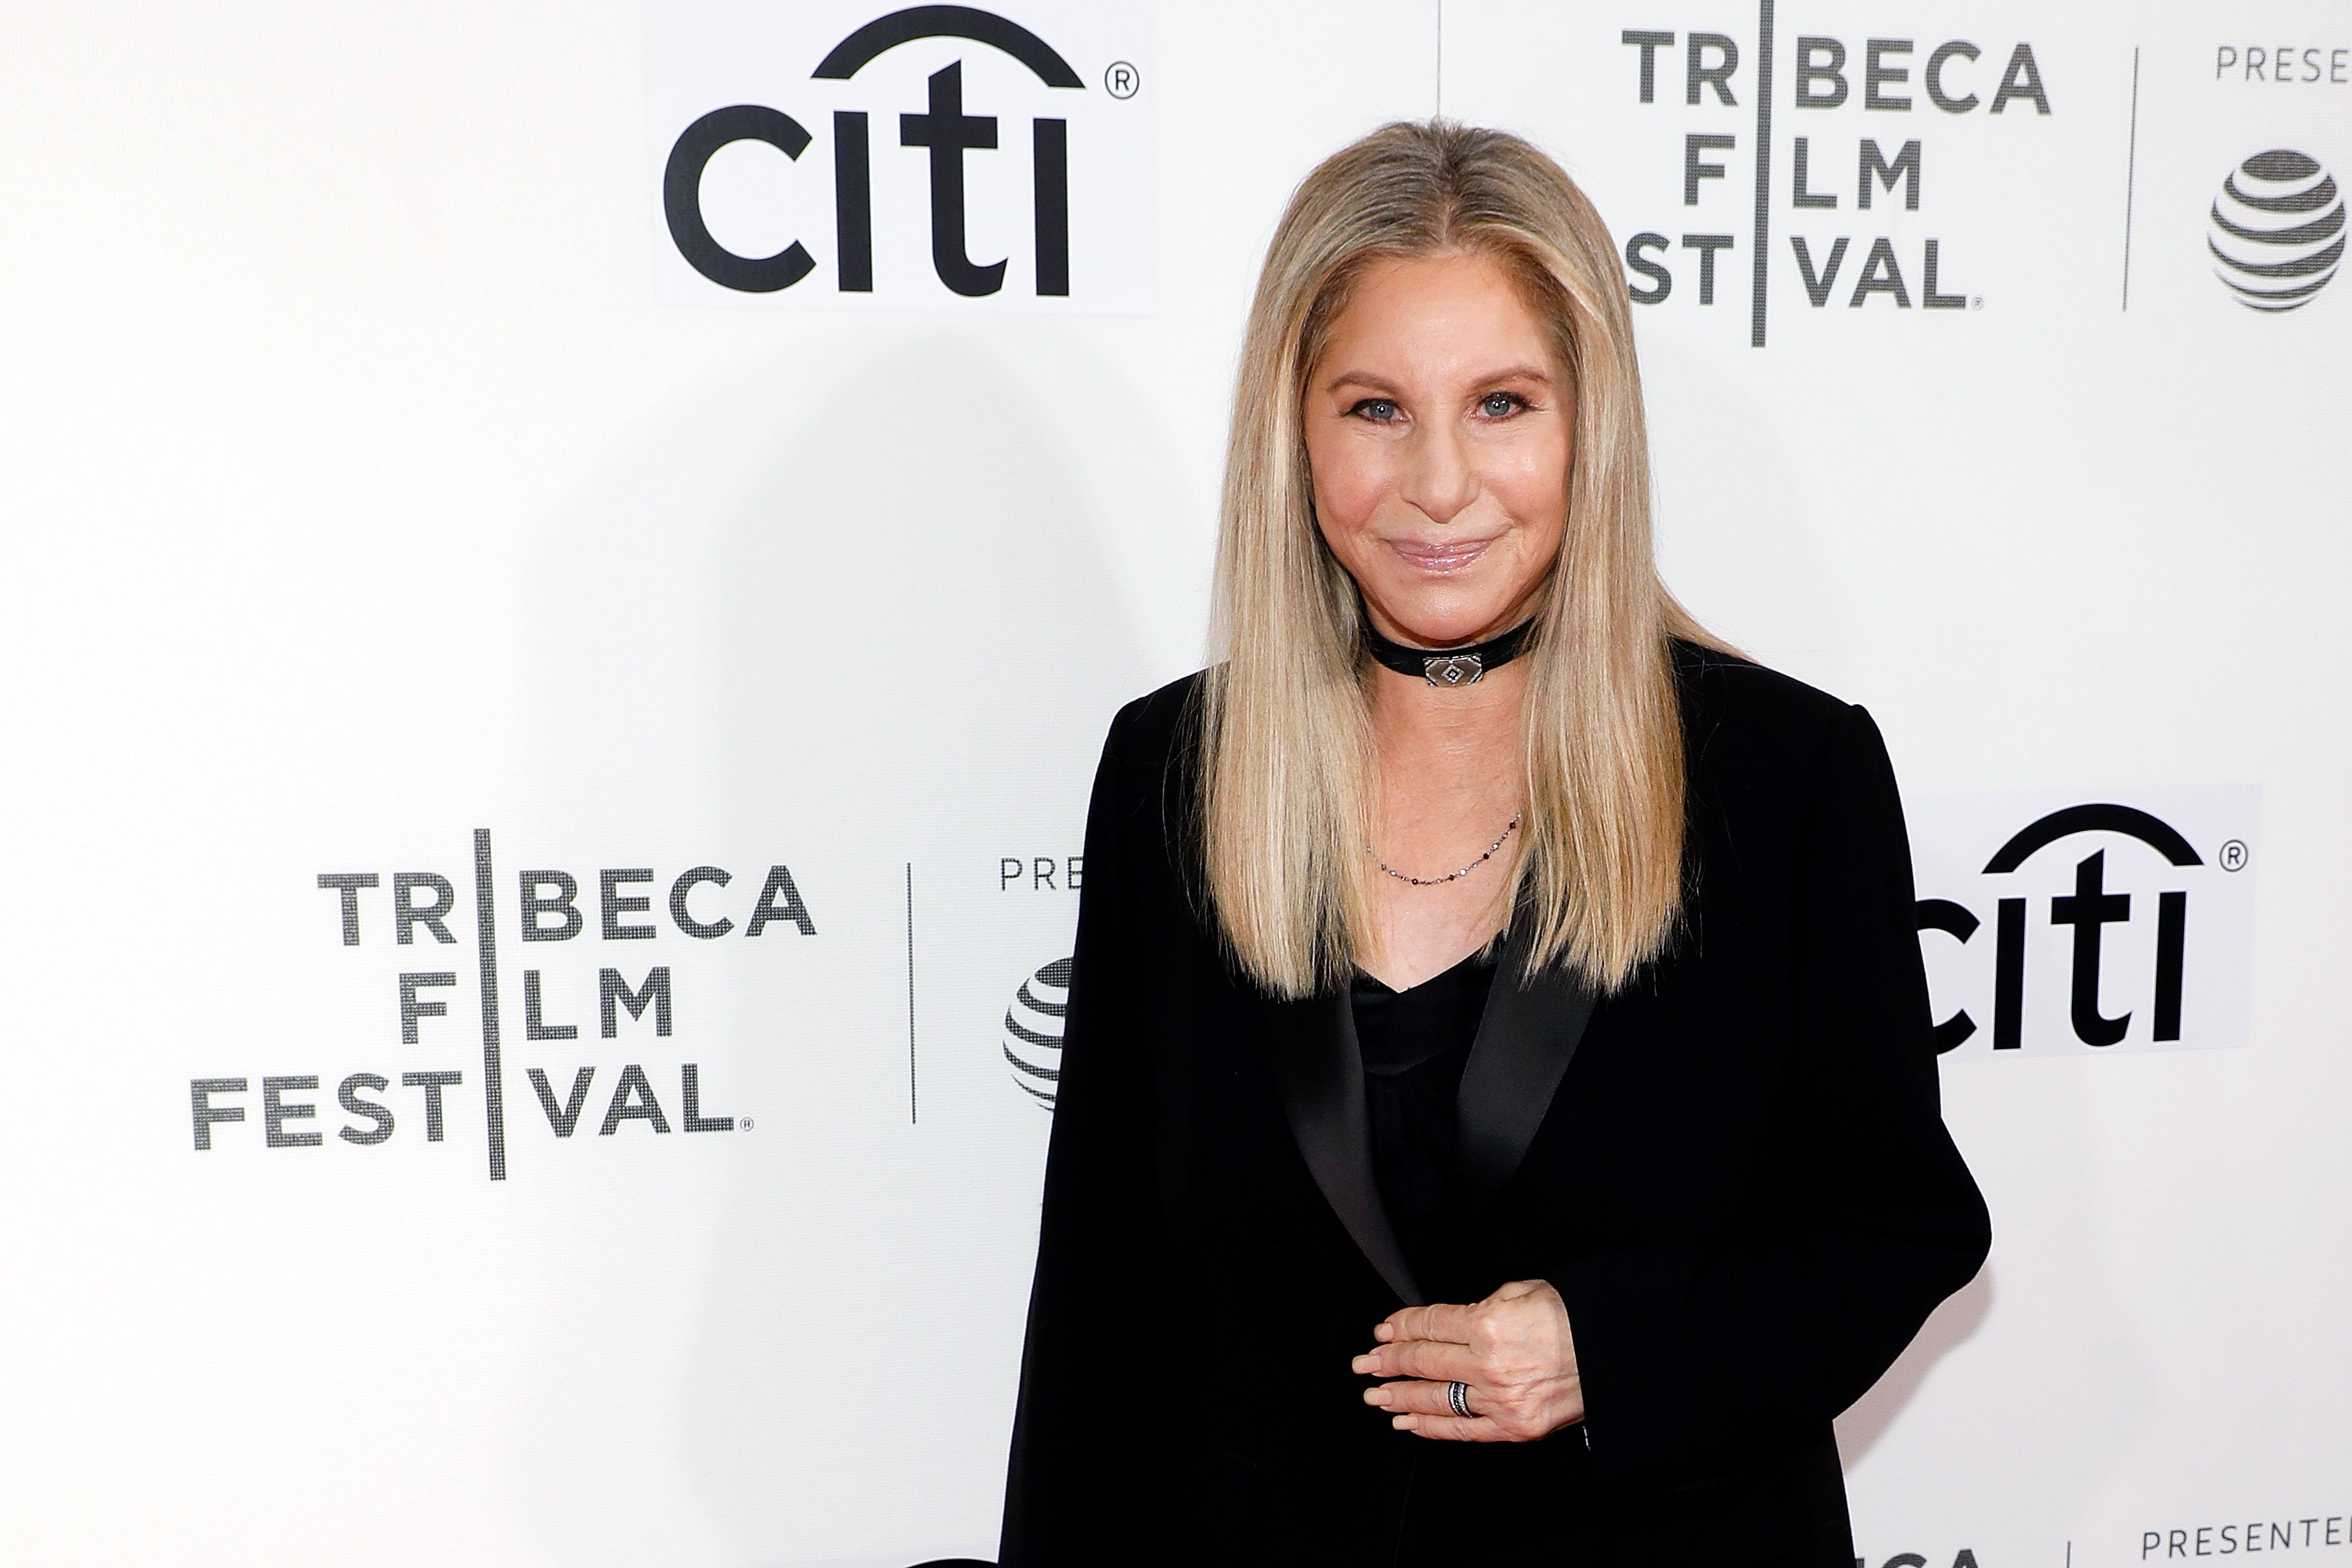 Barbra Streisand at the 2017 Tribeca Film Festival at Borough of Manhattan Community College on April 29, 2017  | Photo: GettyImages